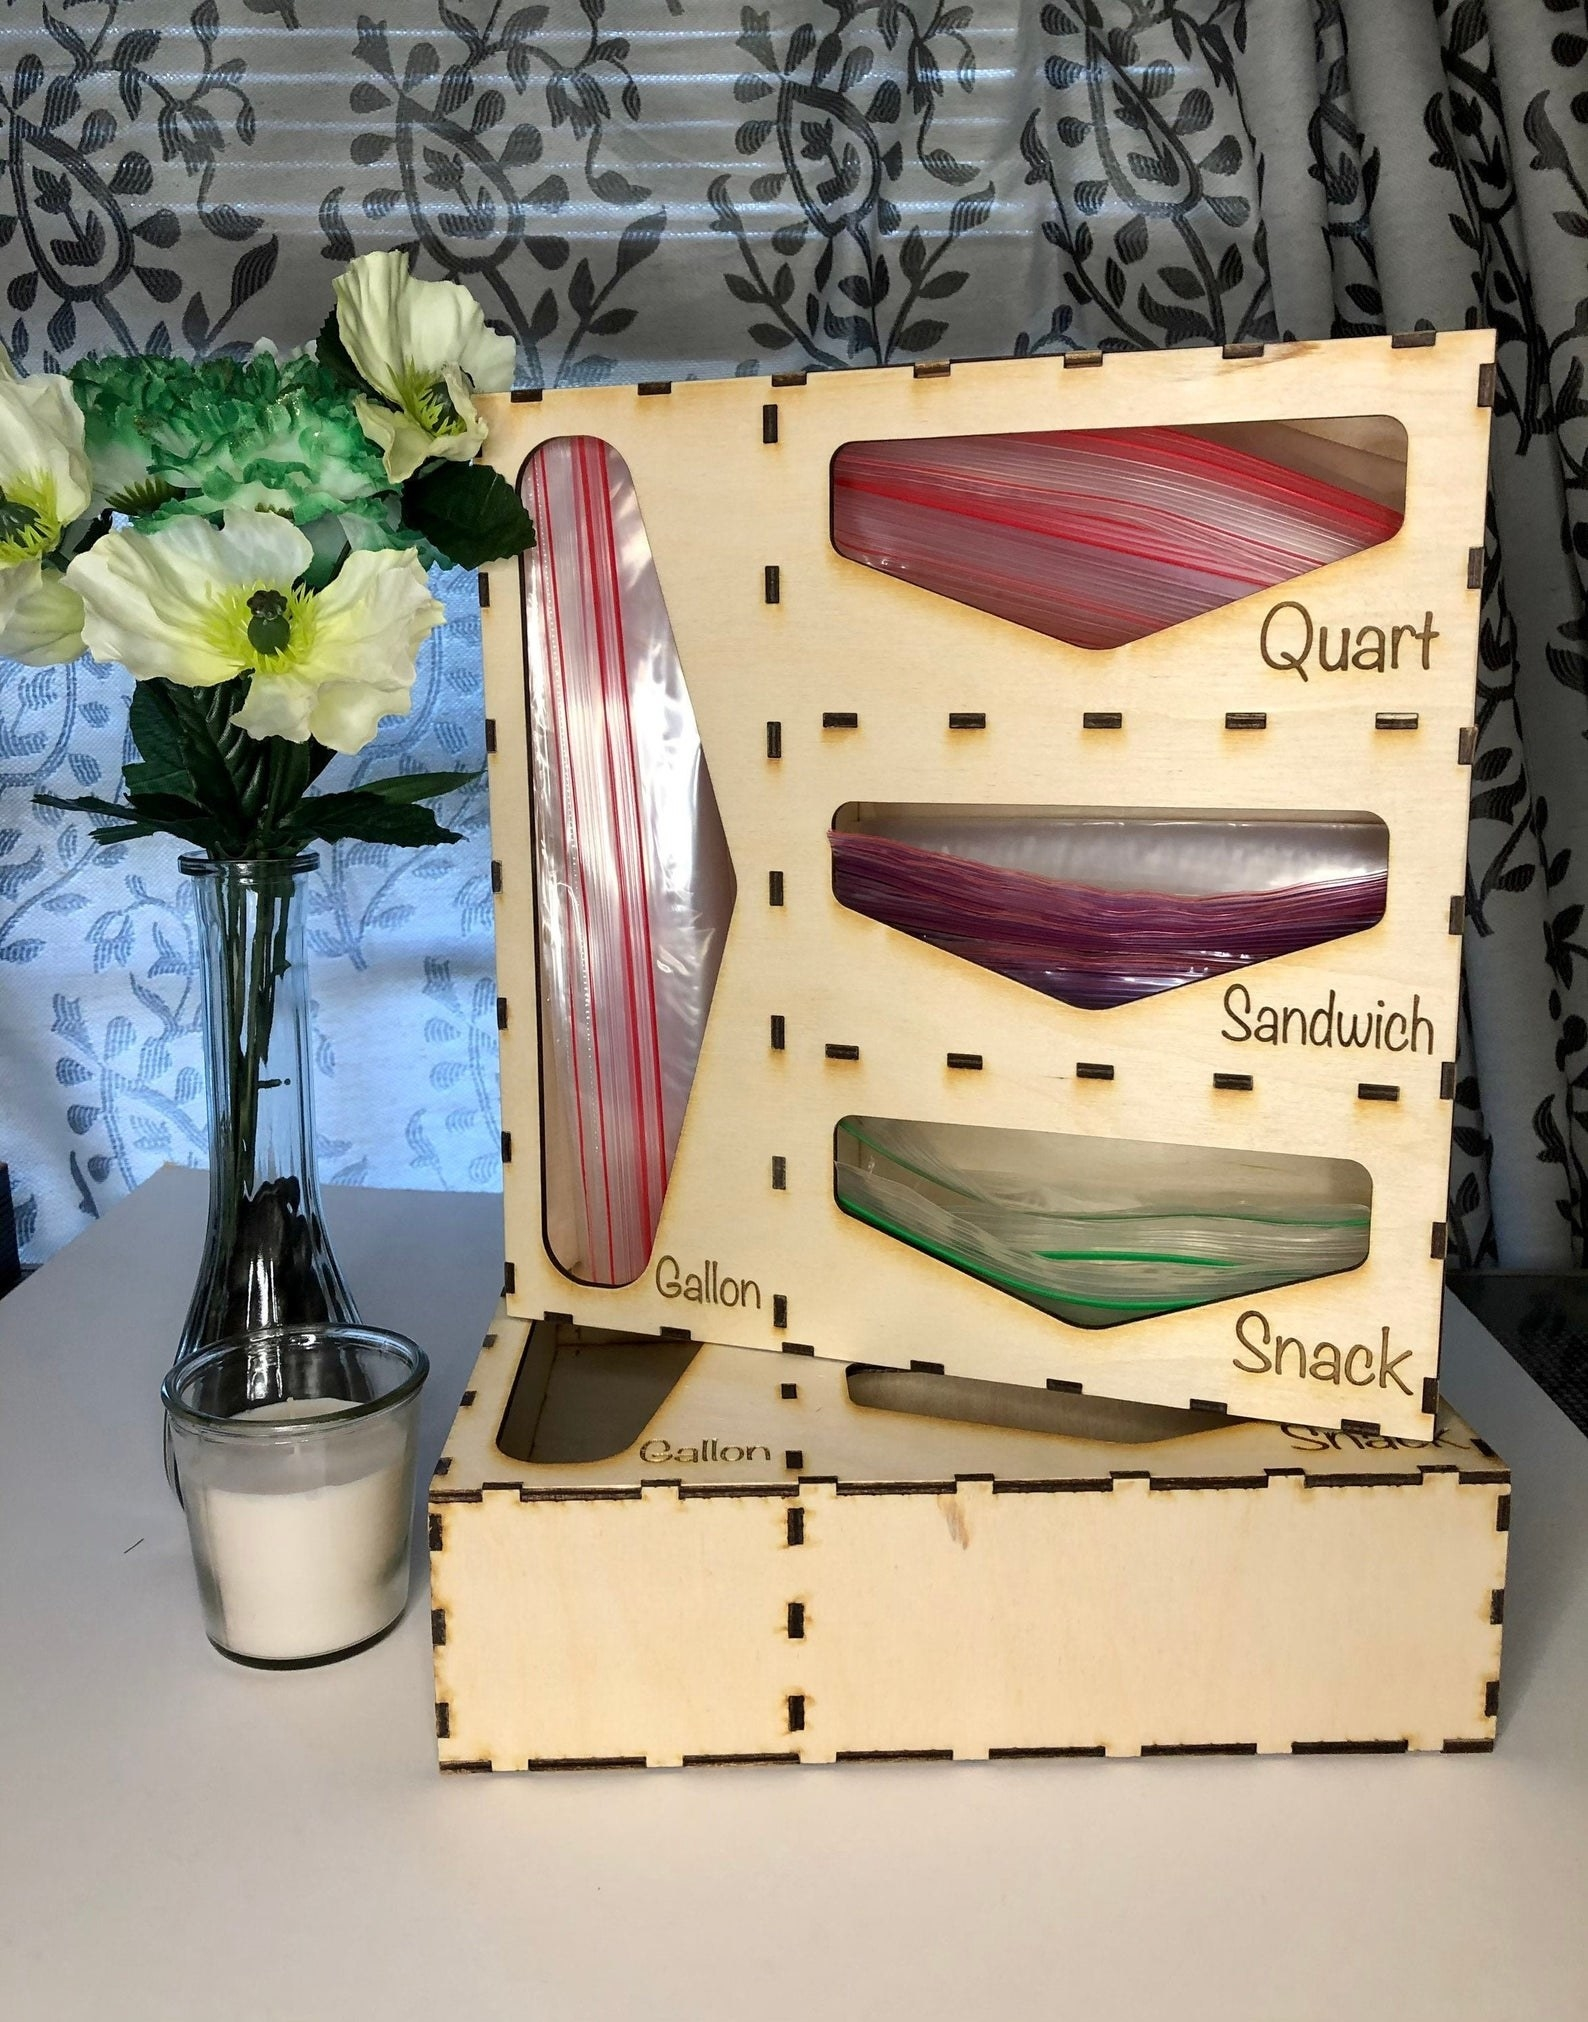 wooden organizer with slots for ziploc bags with the words quart, sandwich, snack, and gallon on it